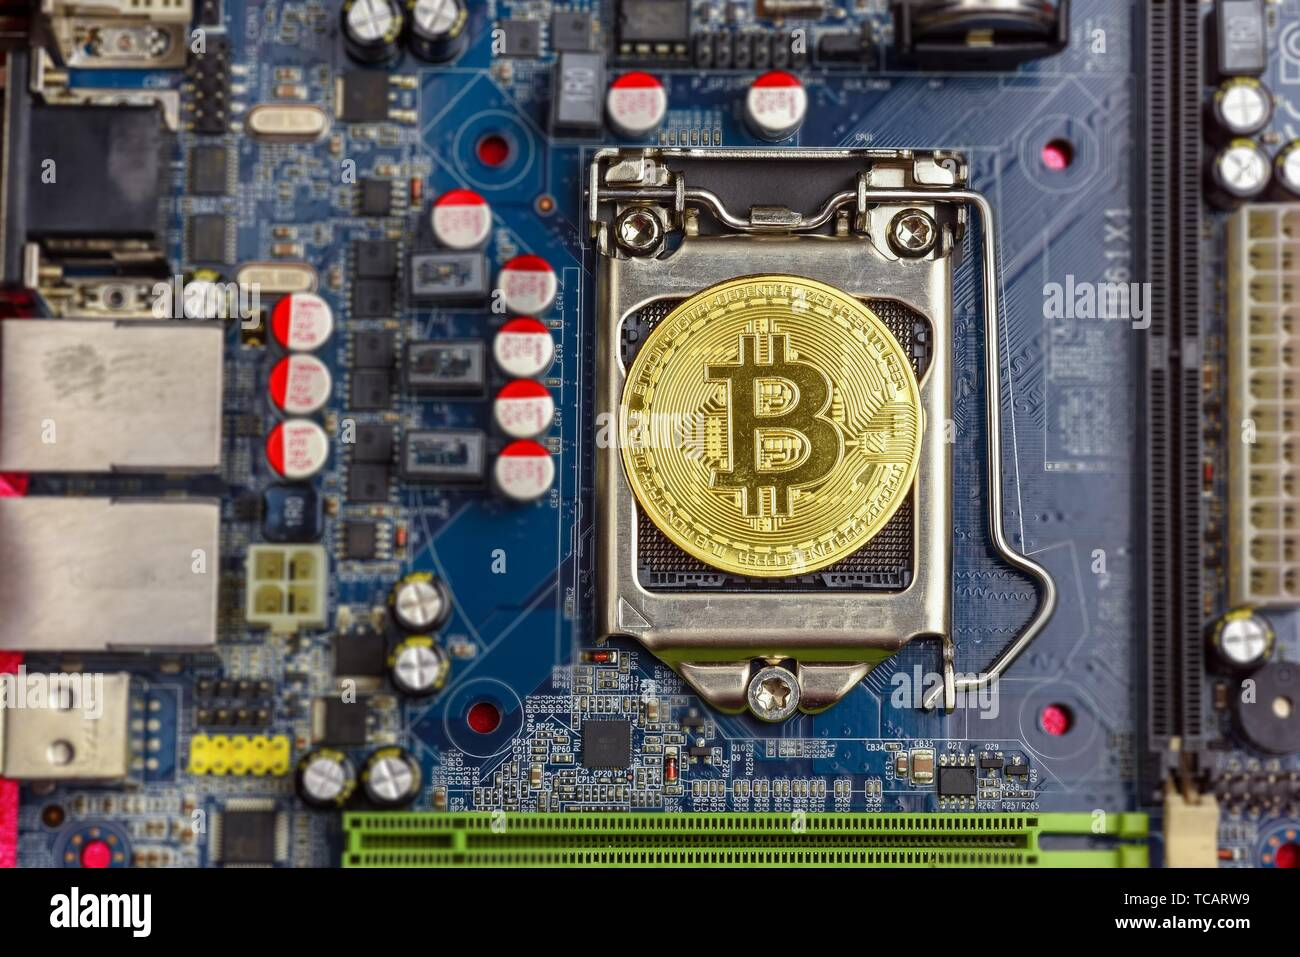 Top view of golden bit coin on computer mother board processor. Bitcoin mining farm, working computer equipment concept. Stock Photo